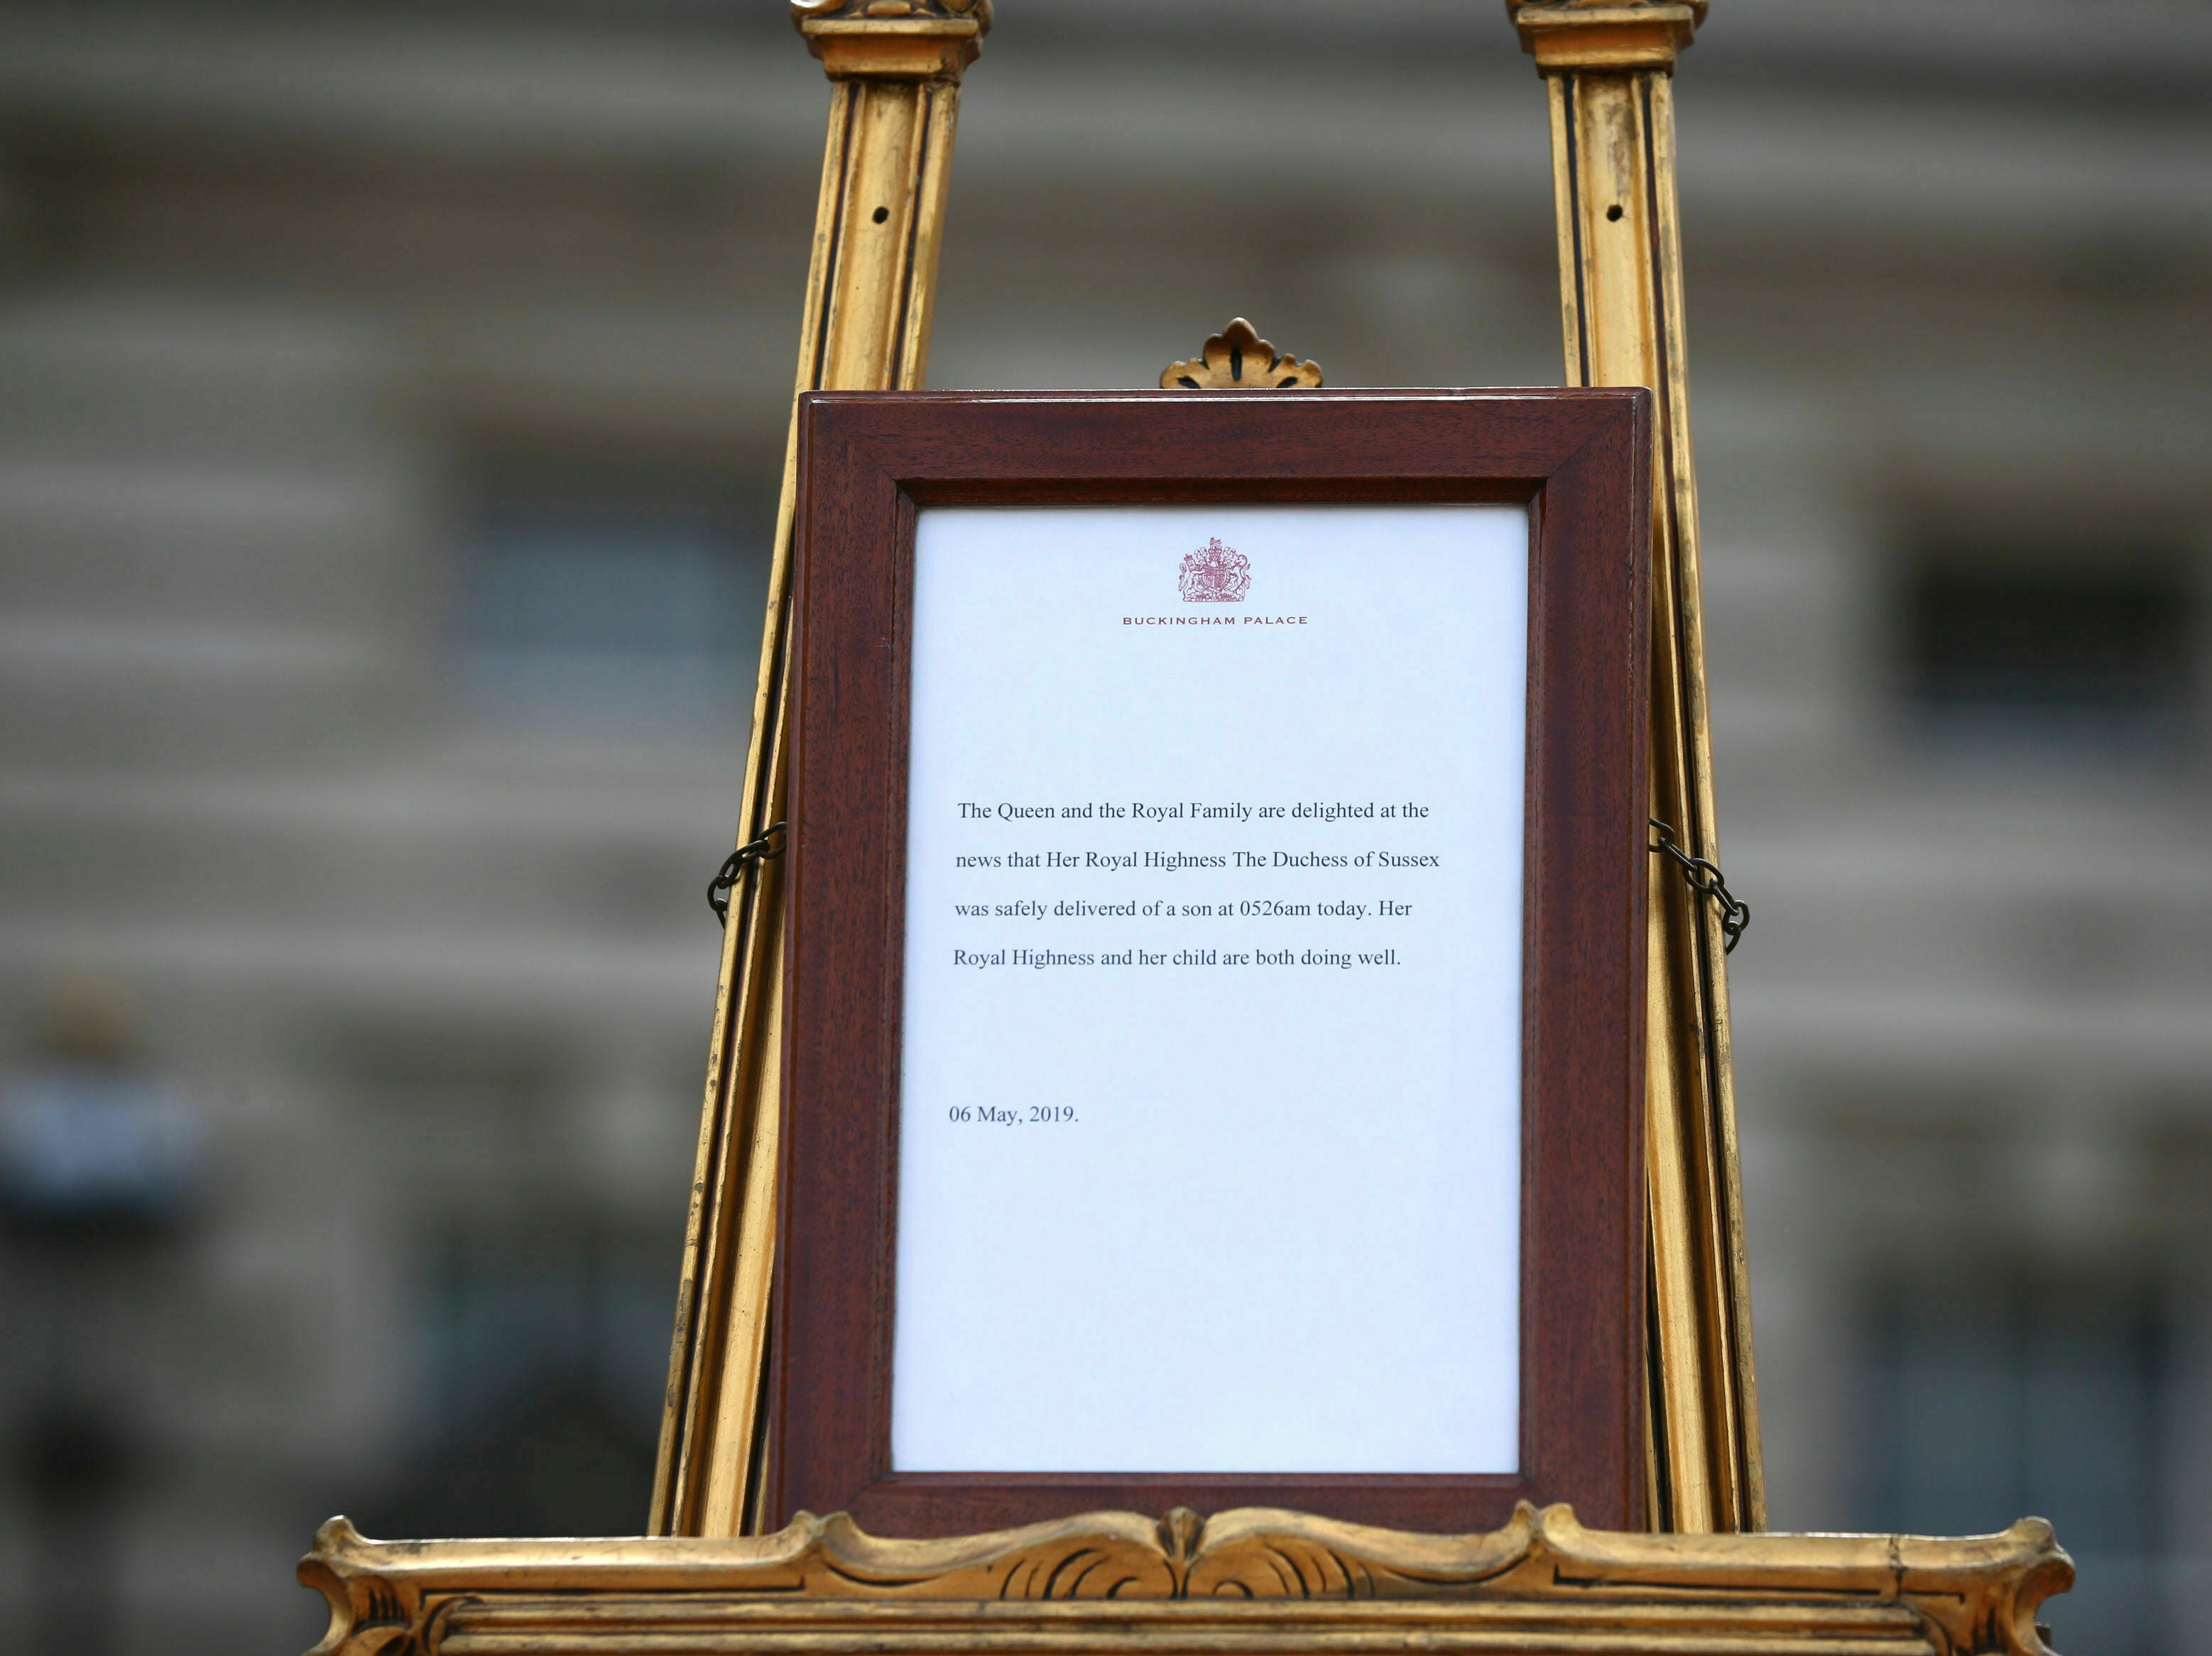 """The notice placed on an easel in the forecourt of Buckingham Palace reads: """"The Queen and the Royal Family are delighted at the news that Her Royal Highness The Duchess of Sussex was safely delivered of a son at 0526am today. Her royal Highness and her child are both doing well. 06 May, 2019. """""""